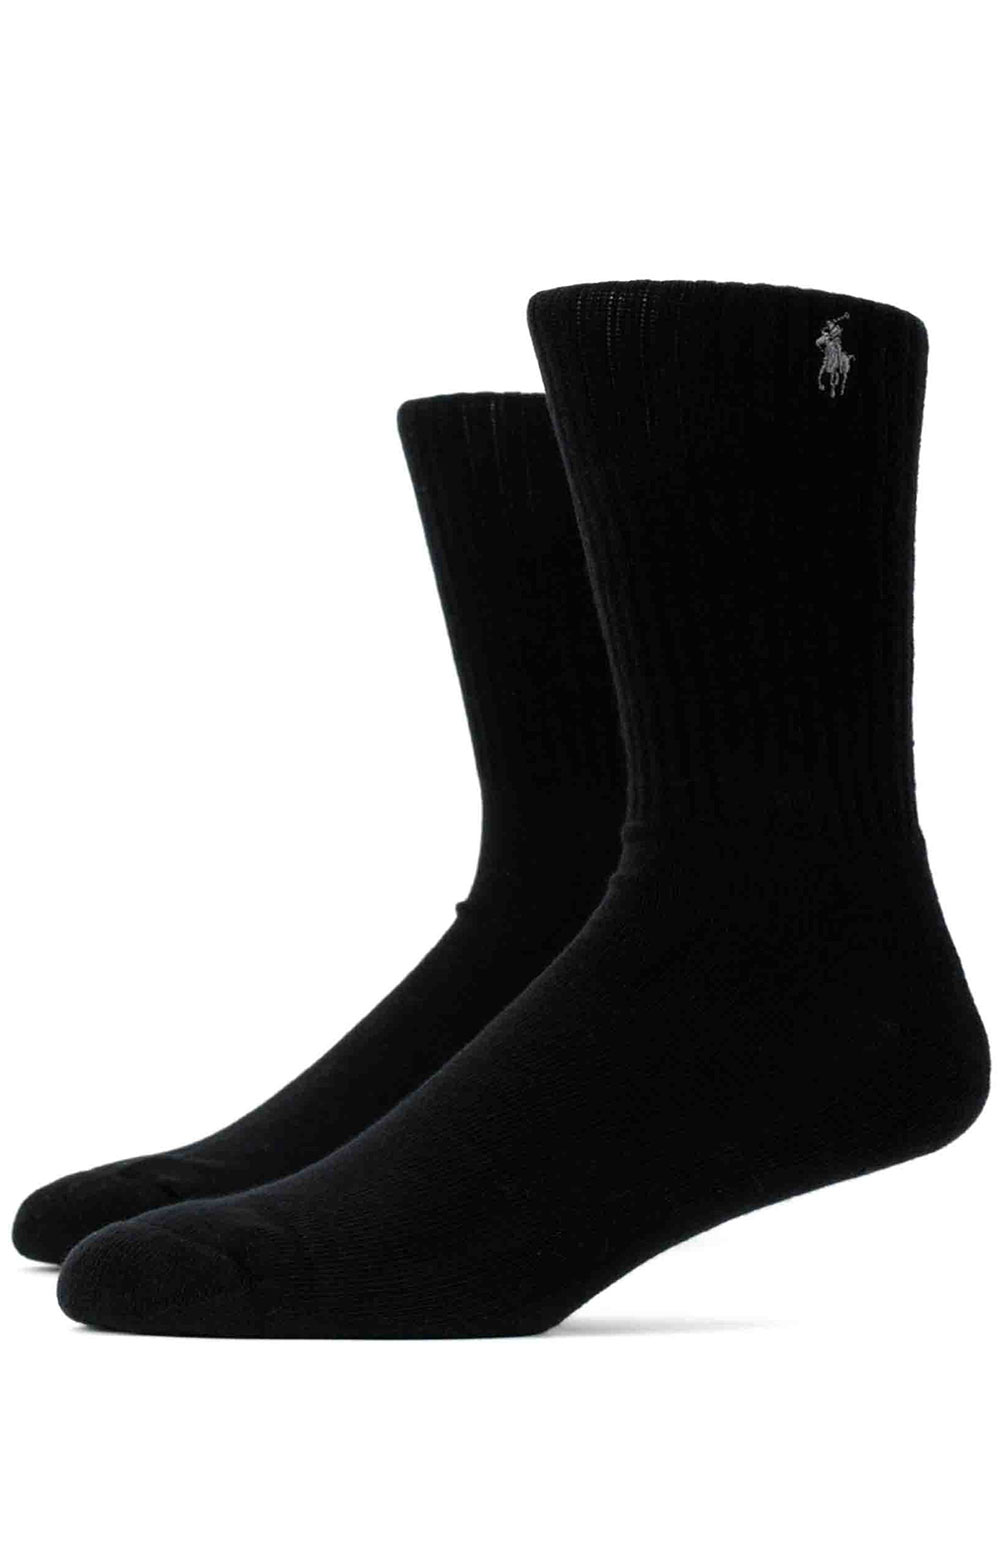 Cushioned Crew Socks 6 Pack - Grey Assorted  2